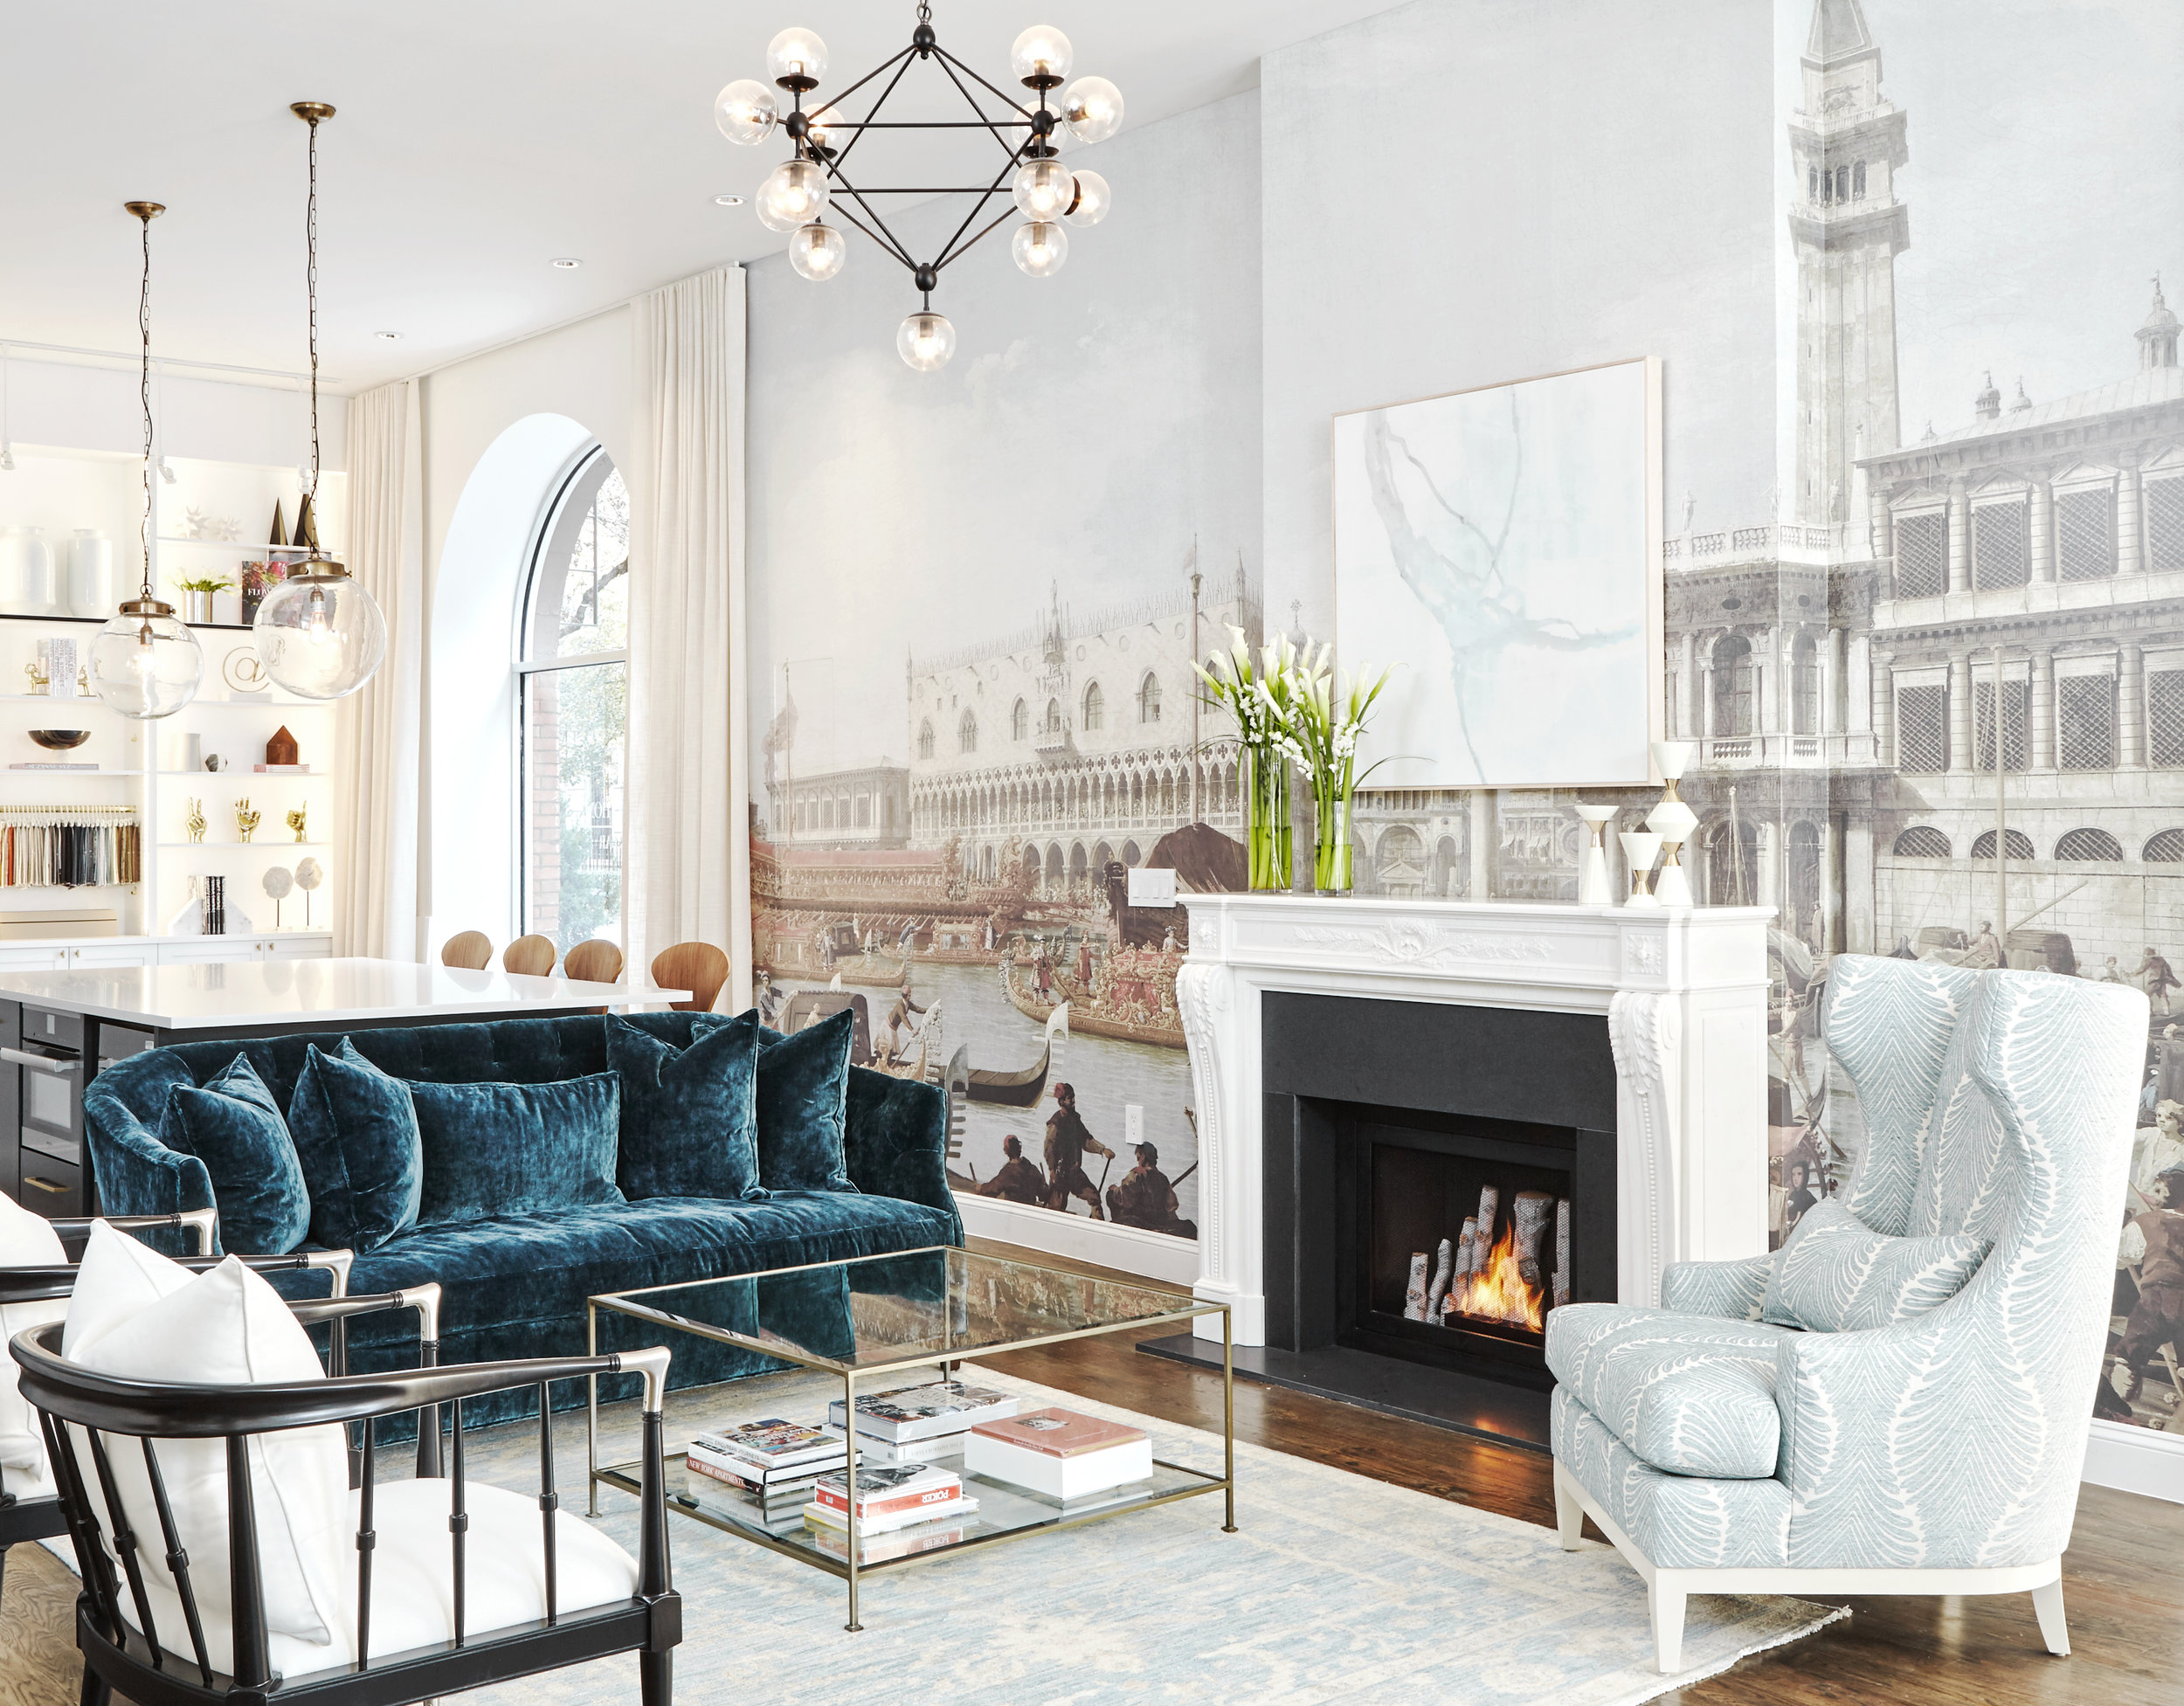 Pictured: Kathy Kuo Home, Design Bar